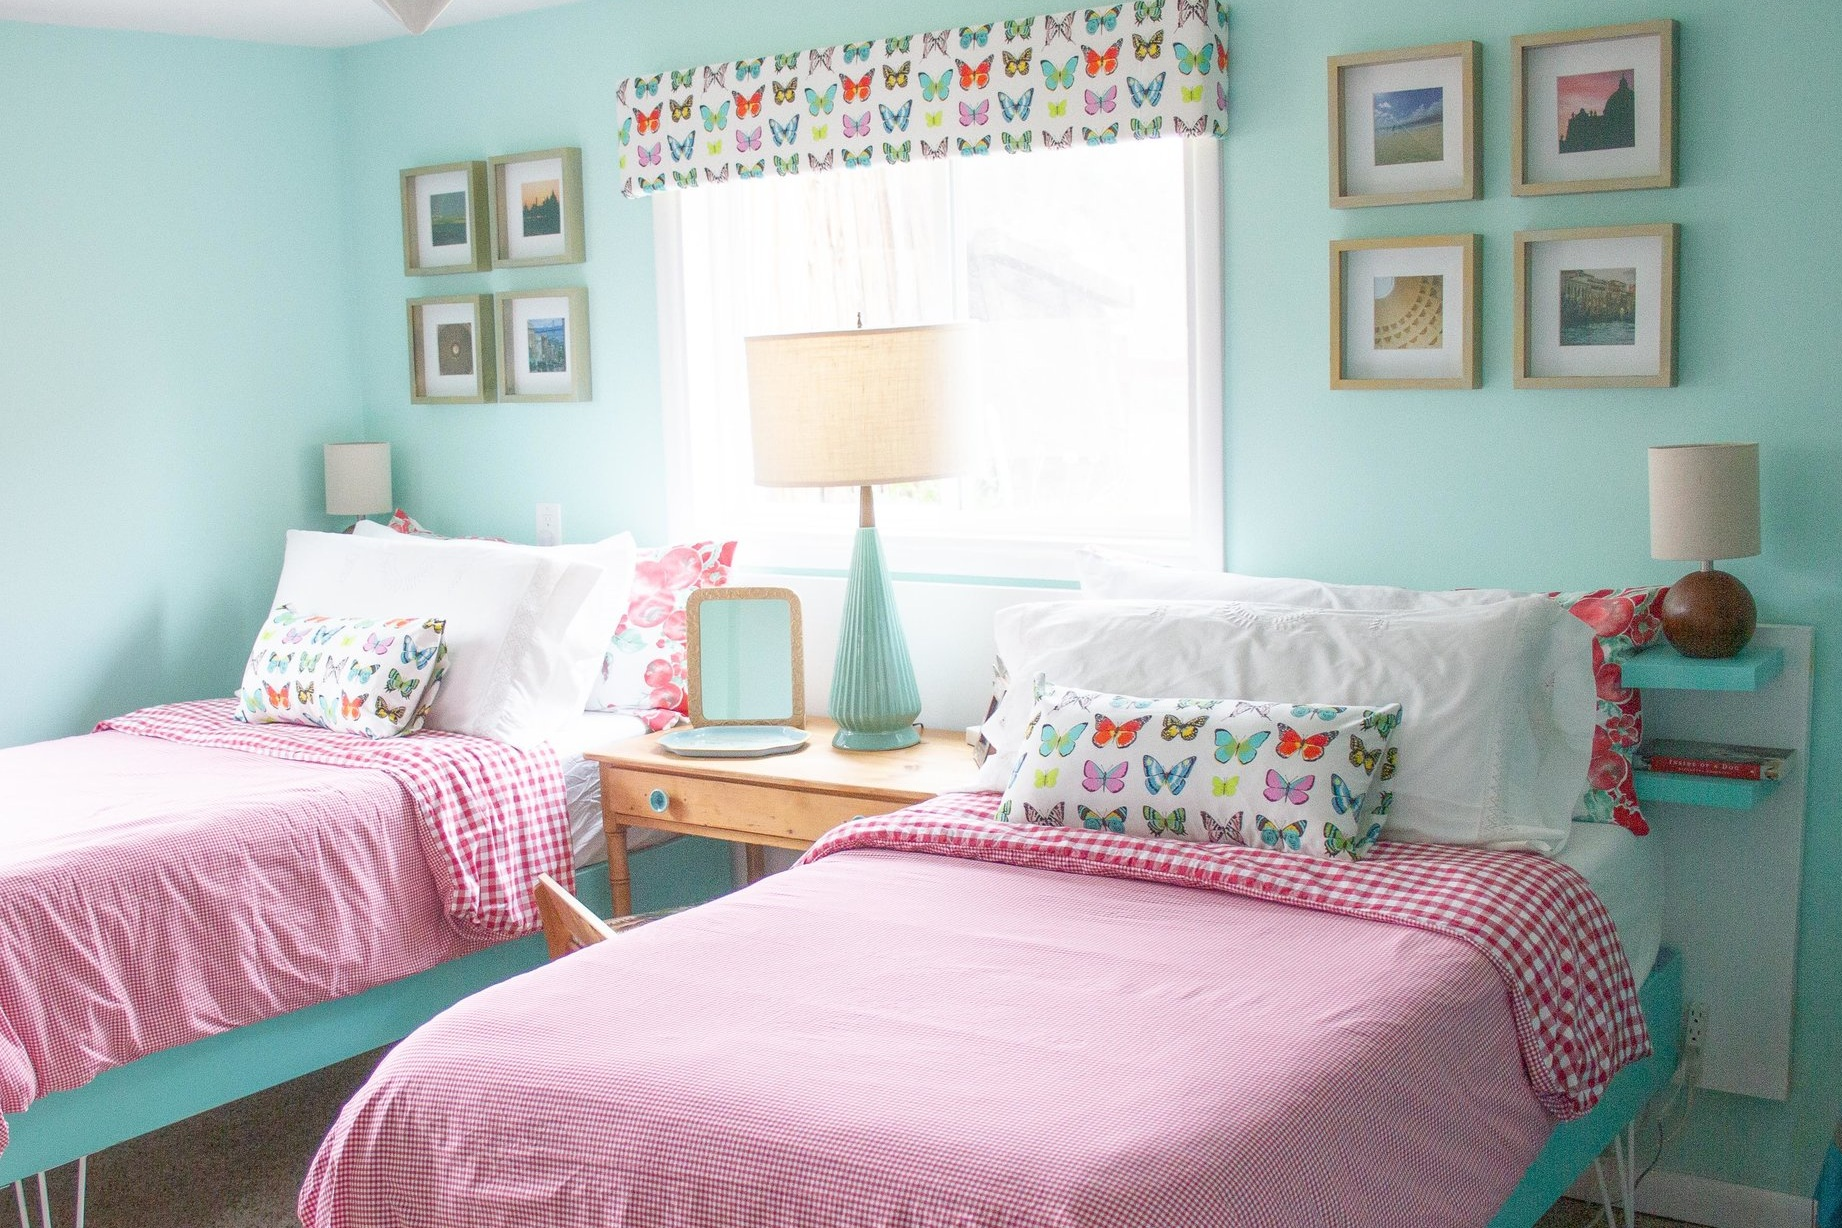 The headboard, created from two closet doors, cost just $10 total.